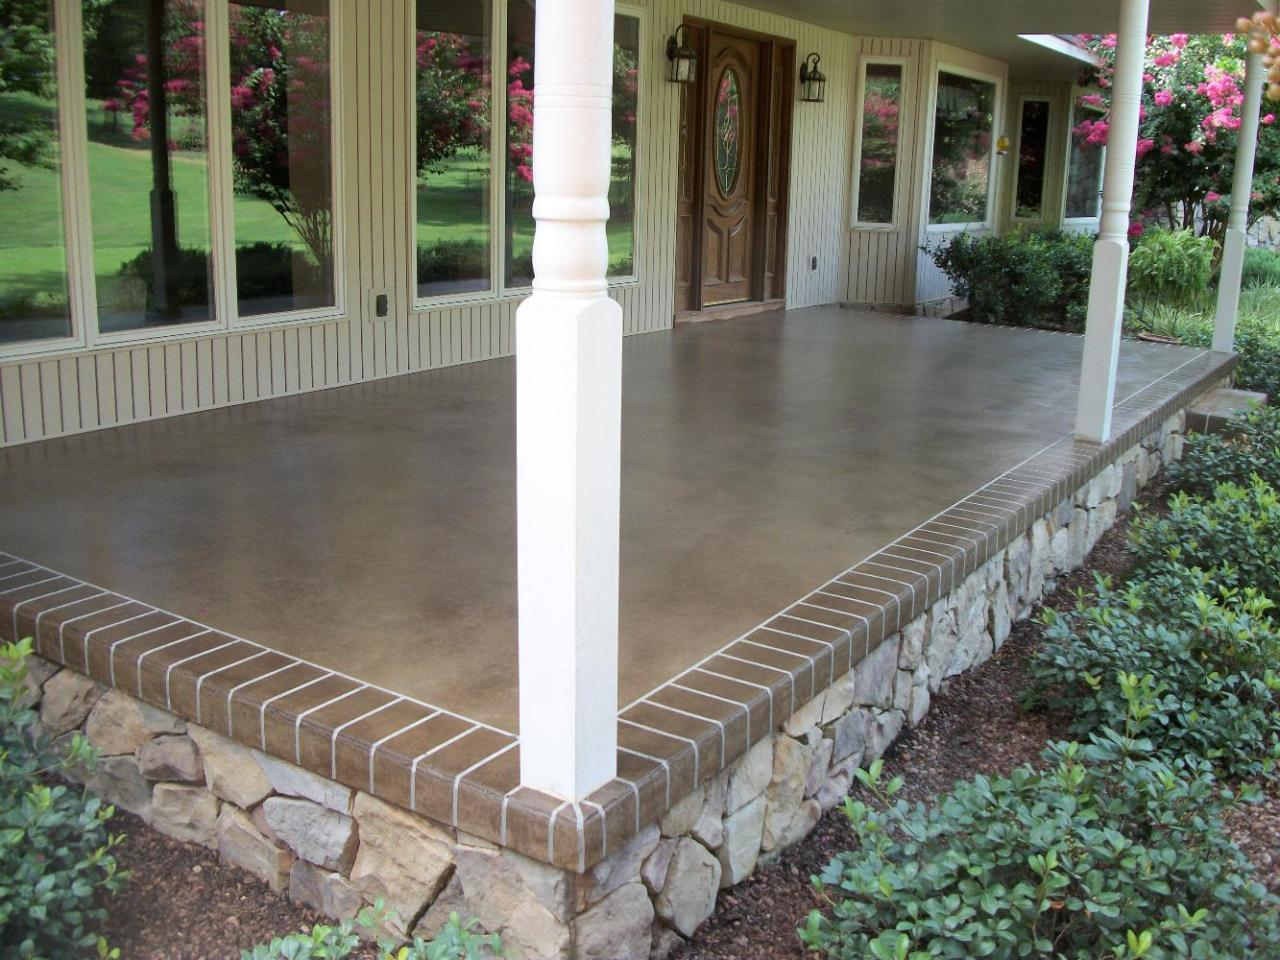 Southern concrete designs llc photo gallery 2 for Porch tiles designs for houses